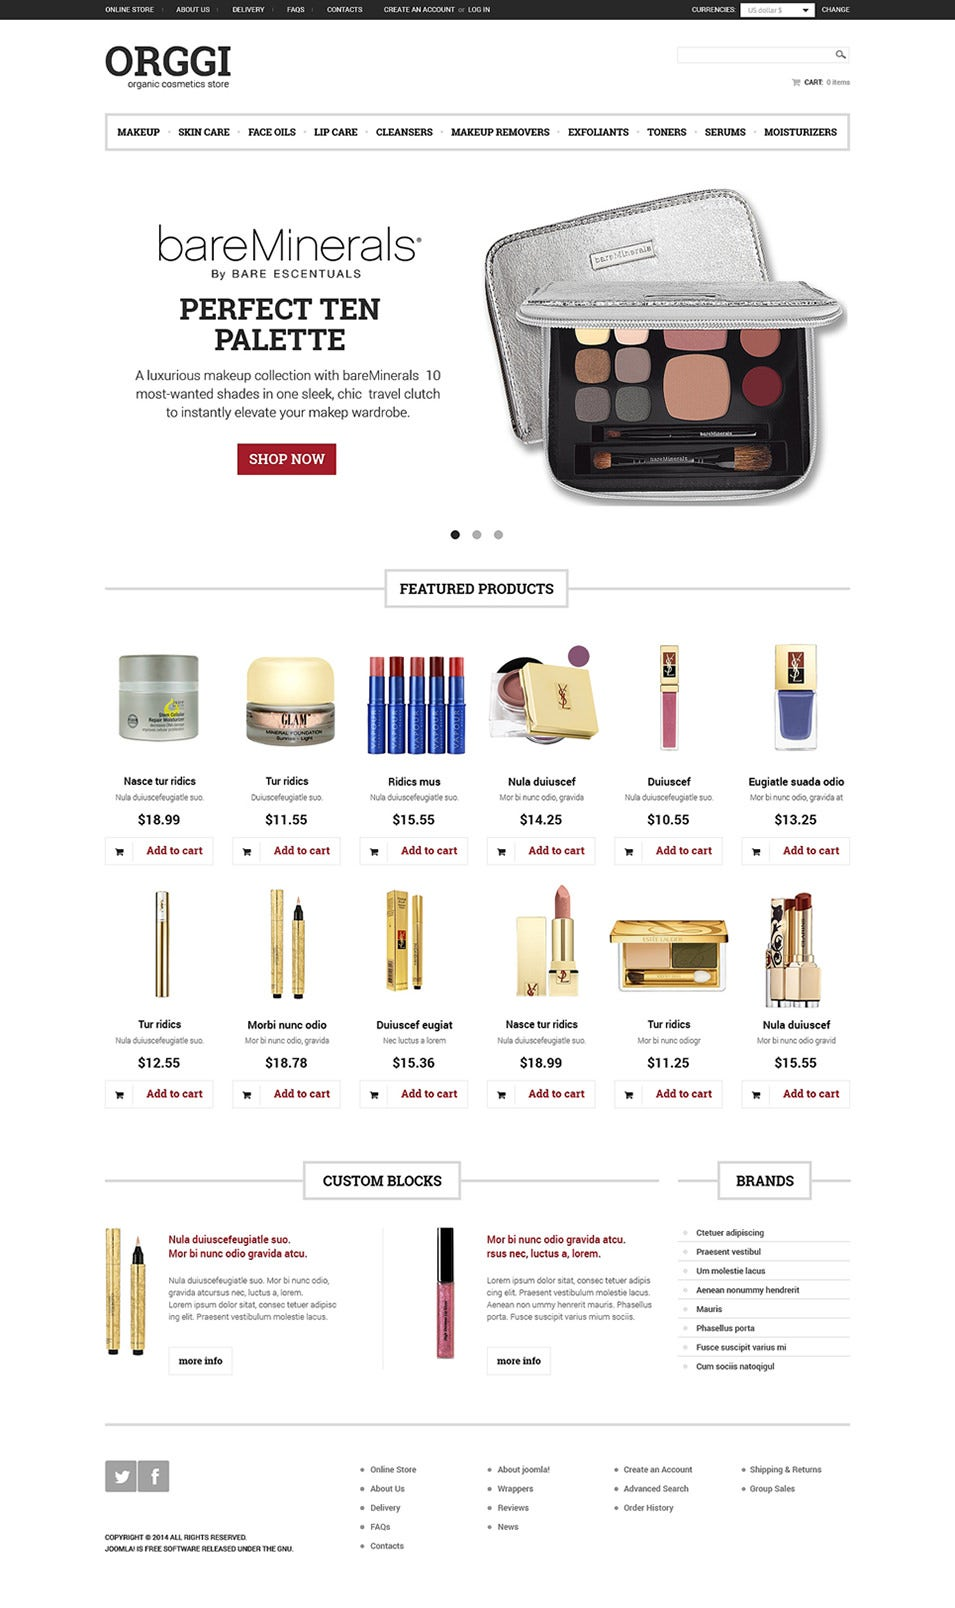 cosmetics store virtuemart template4